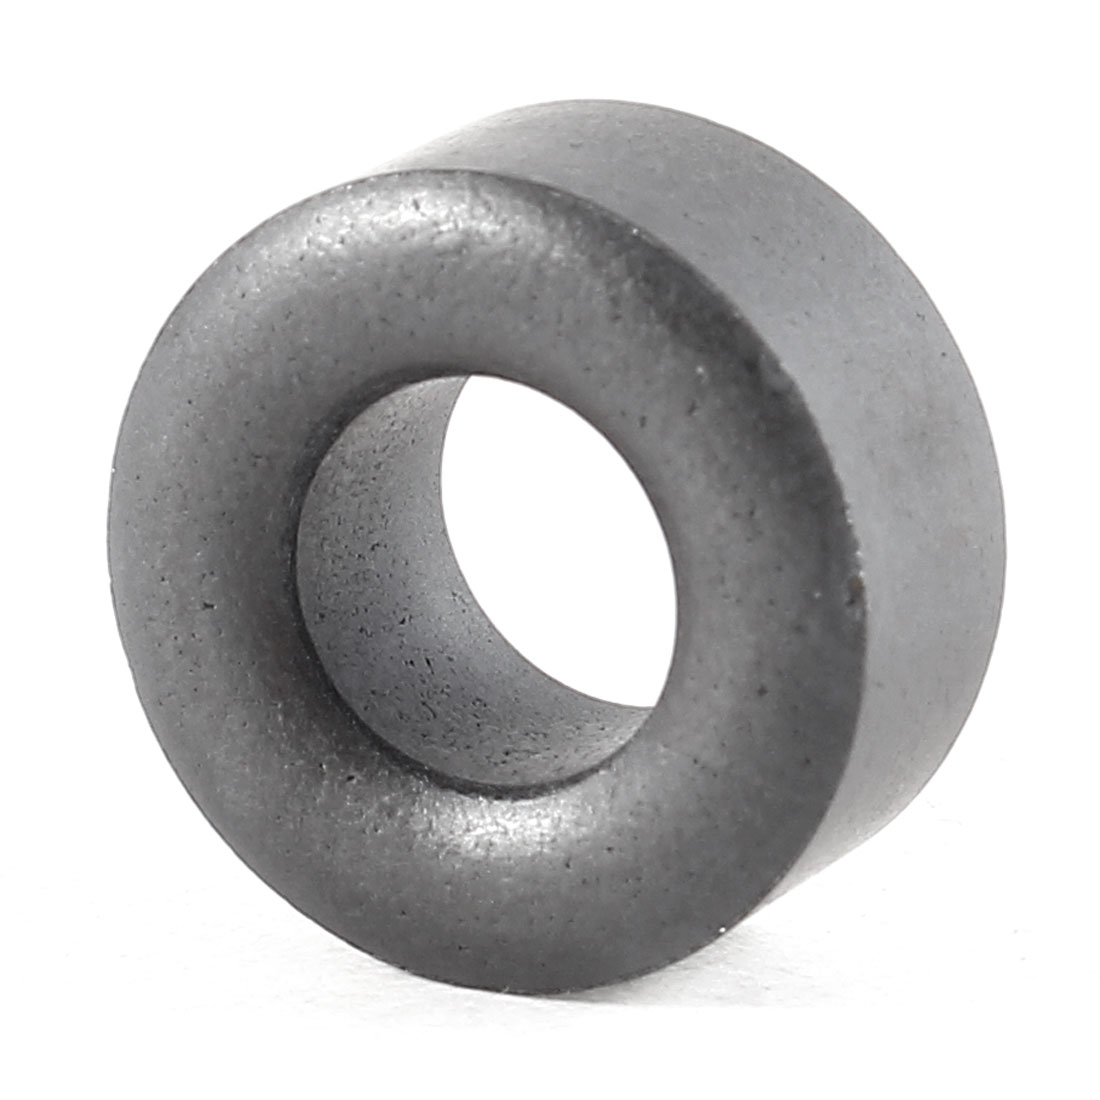 UXCELL 20X10x10mm Toroid Ferrite Magnetic Core Dark Gray For Power(China (Mainland))